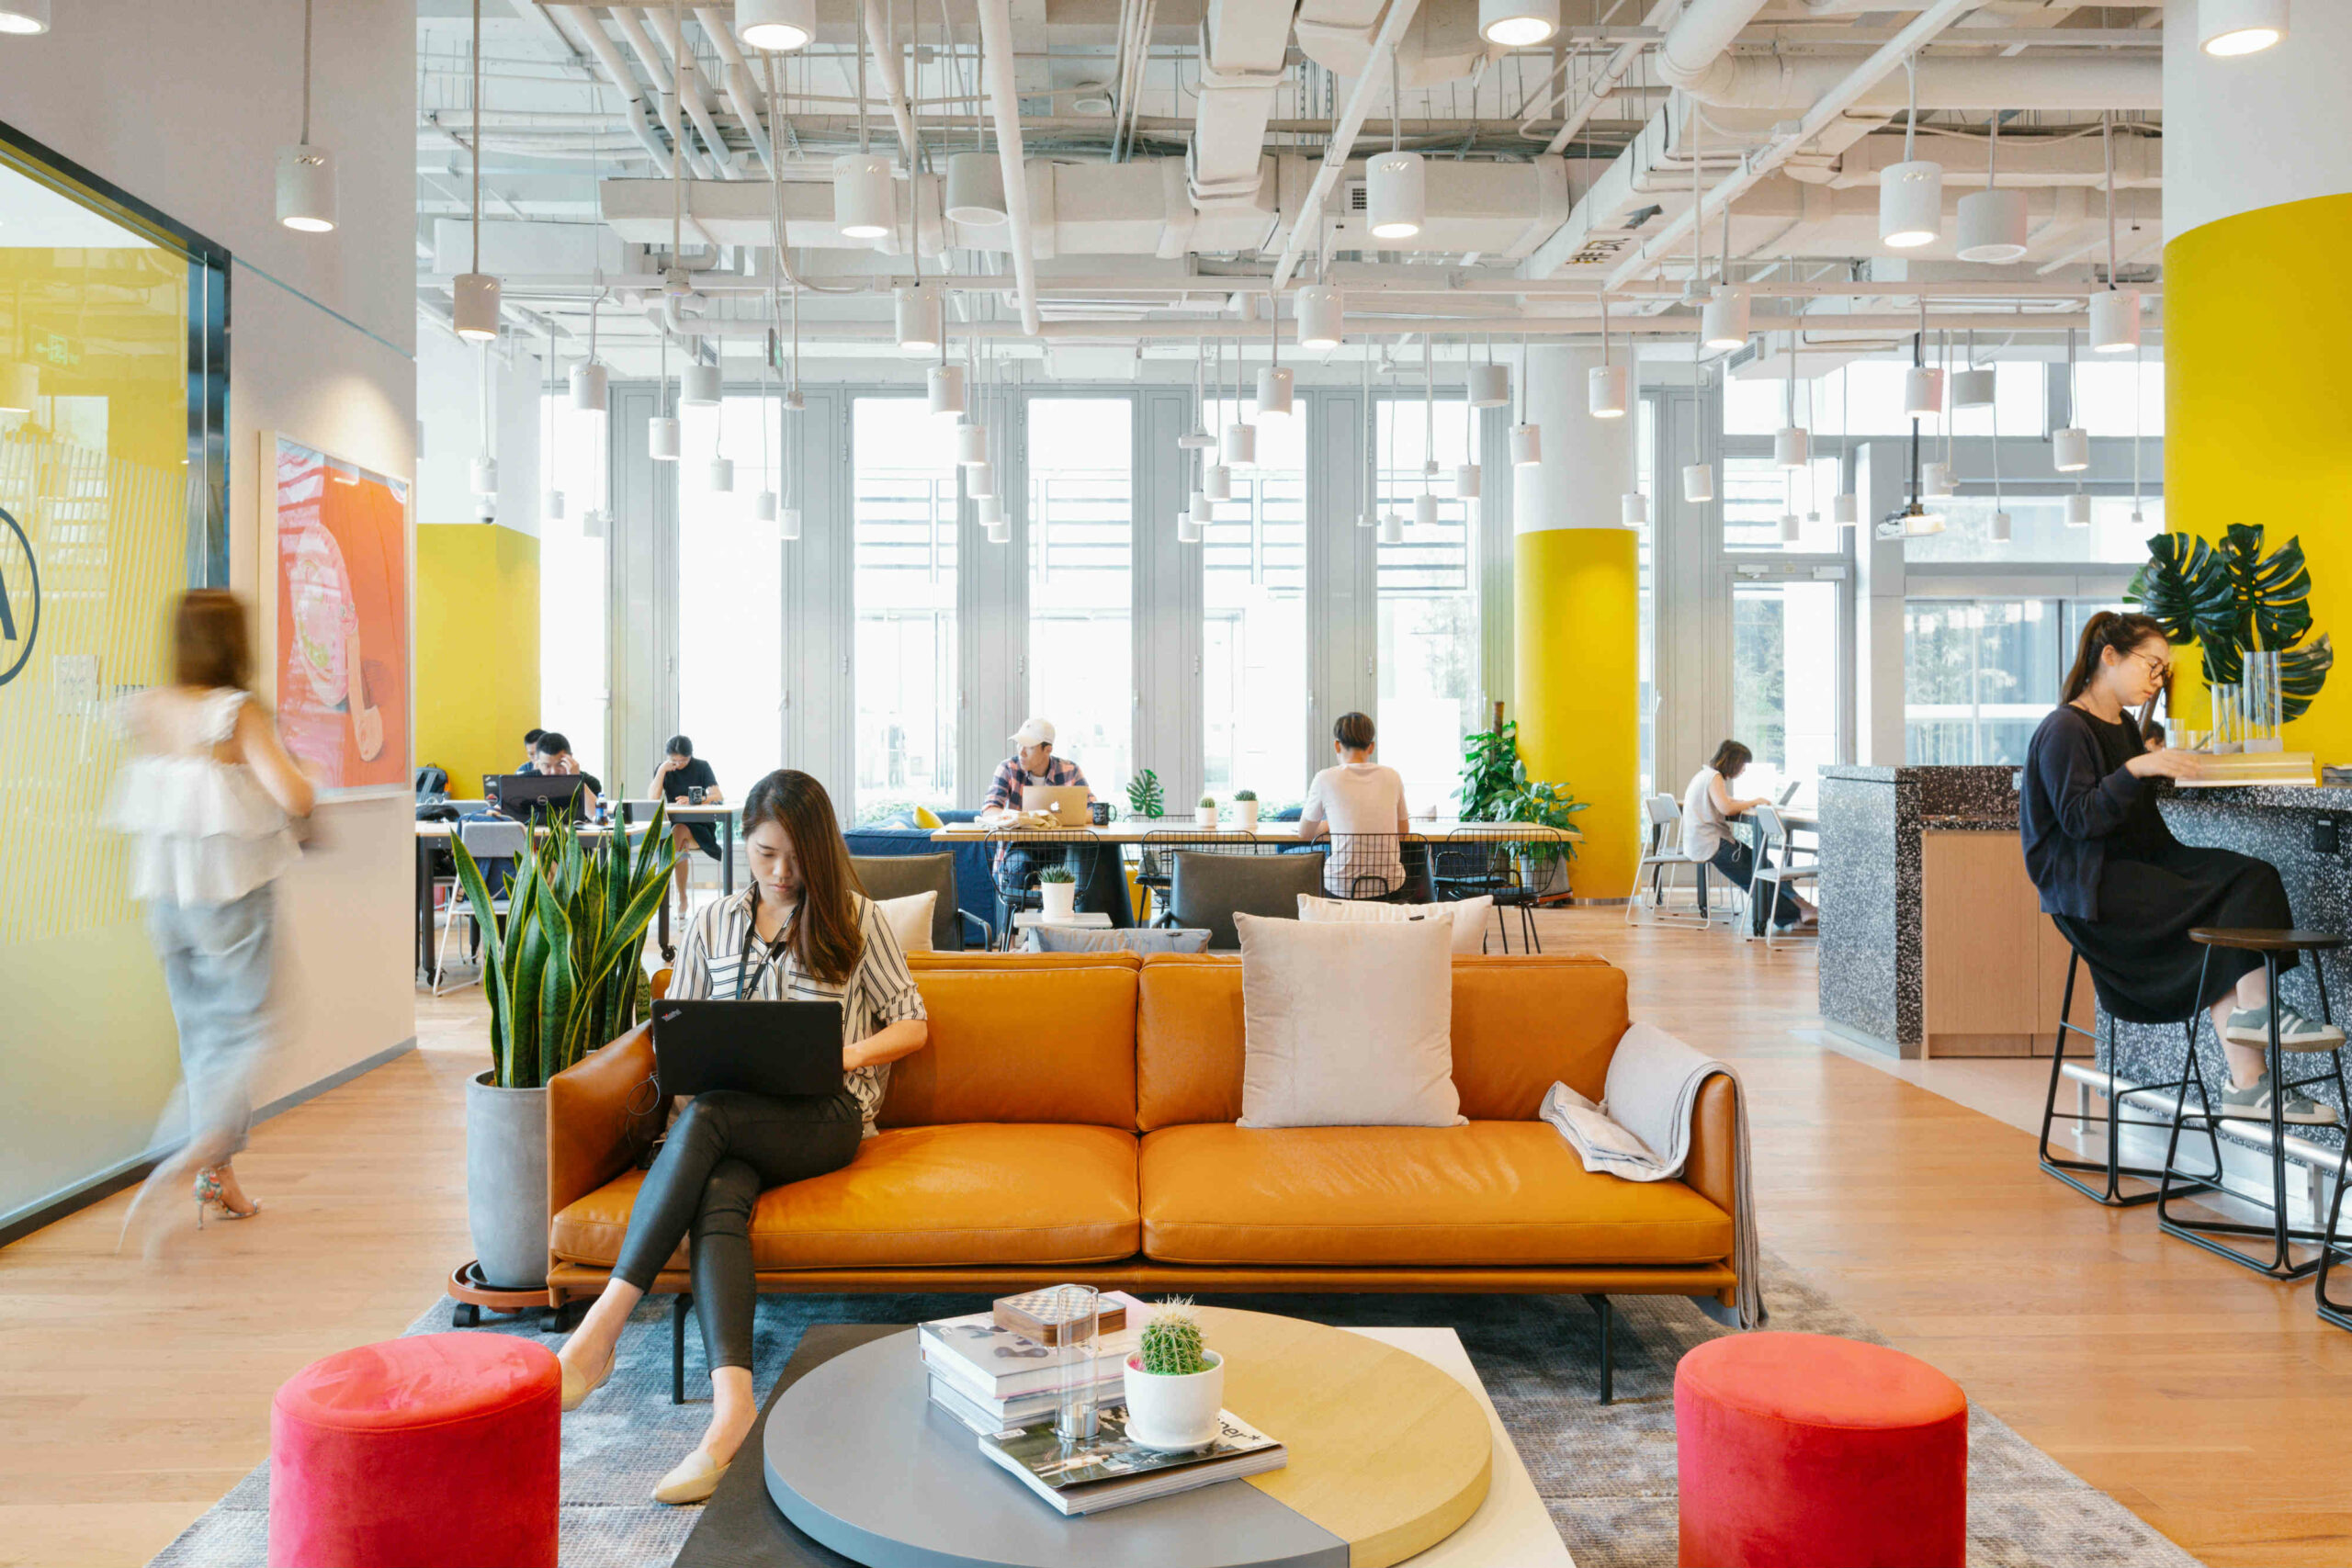 https://workinmind.org/wp-content/uploads/2018/10/wework-dalian-lu-common-areas.jpg-scaled.jpg